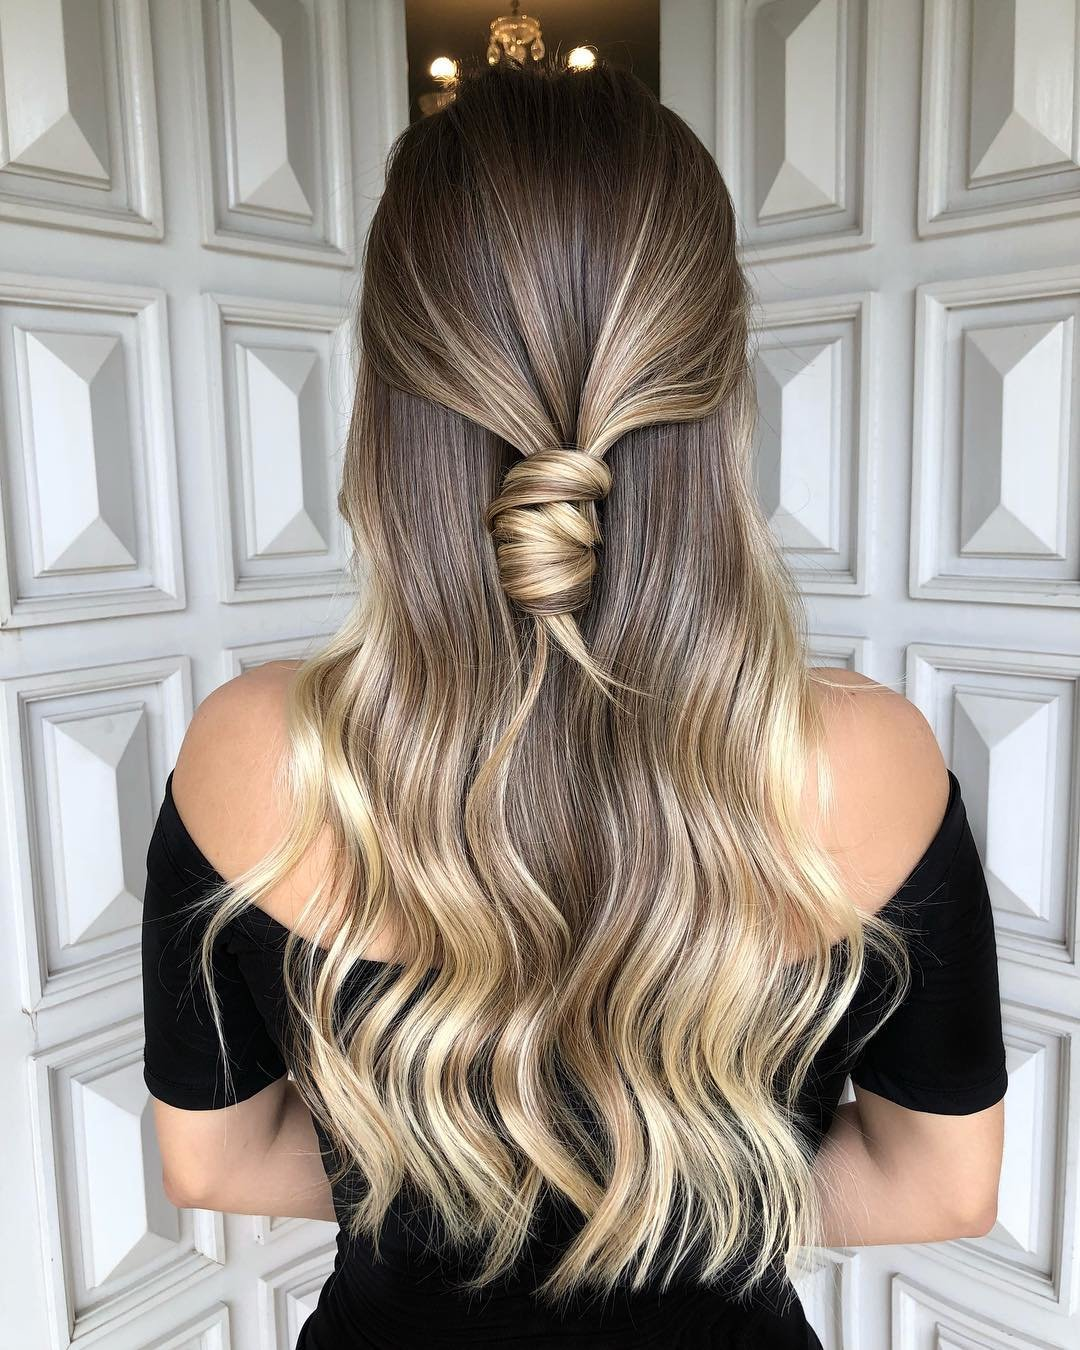 Free 50 Hottest Ombre Hair Color Ideas For 2019 – Ombre Wallpaper